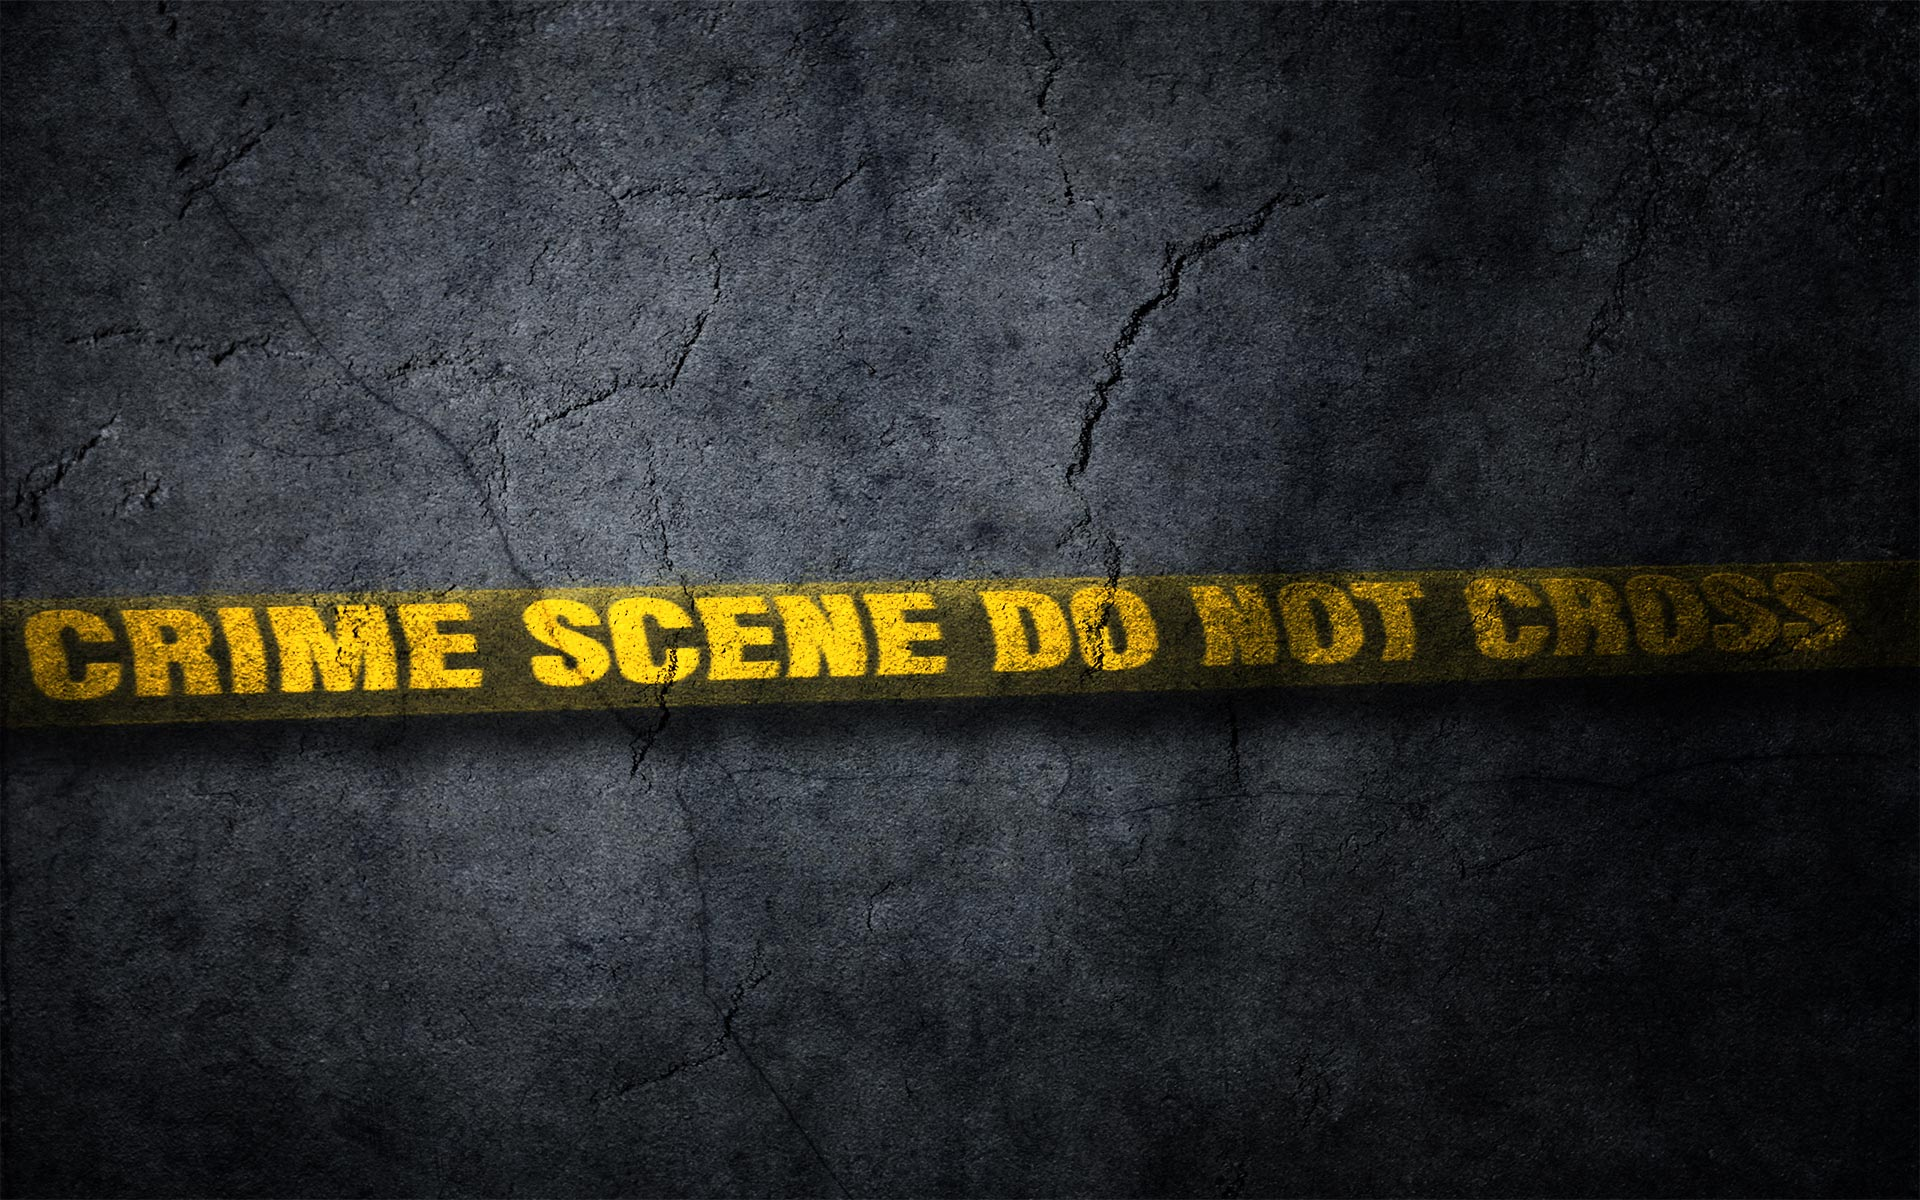 bf02b6 Crime Scene Do Not Cross Wallpape